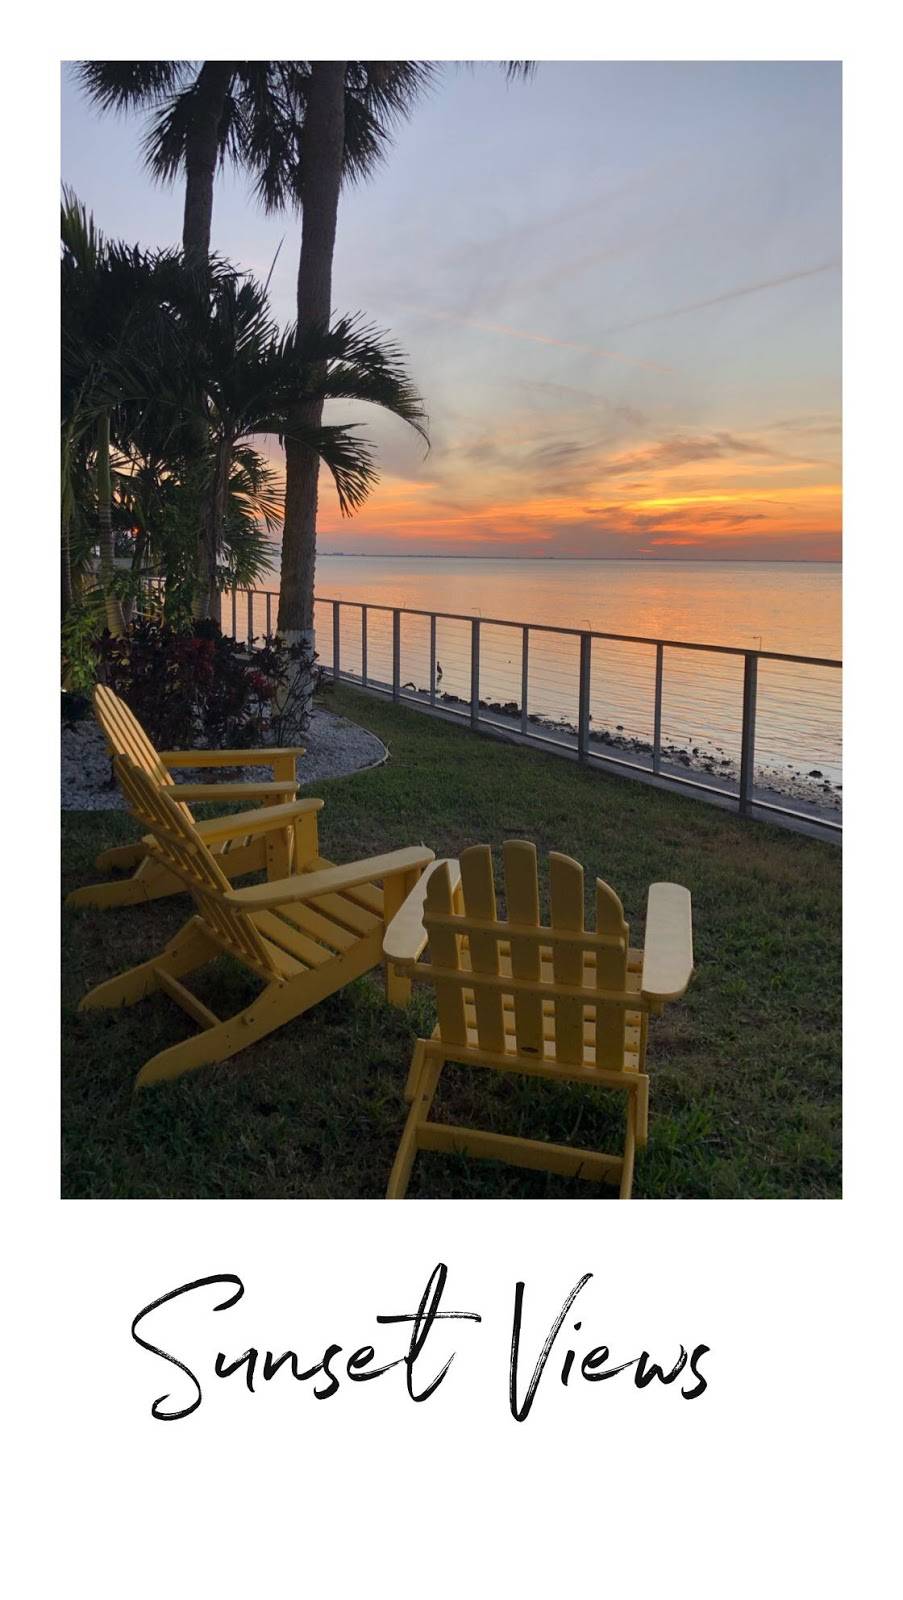 a photo of the Florida sunset. At the Godfrey Hotel & Cabanas in Tampa, Florida. There are bright yellow chairs facing the waterfront view.